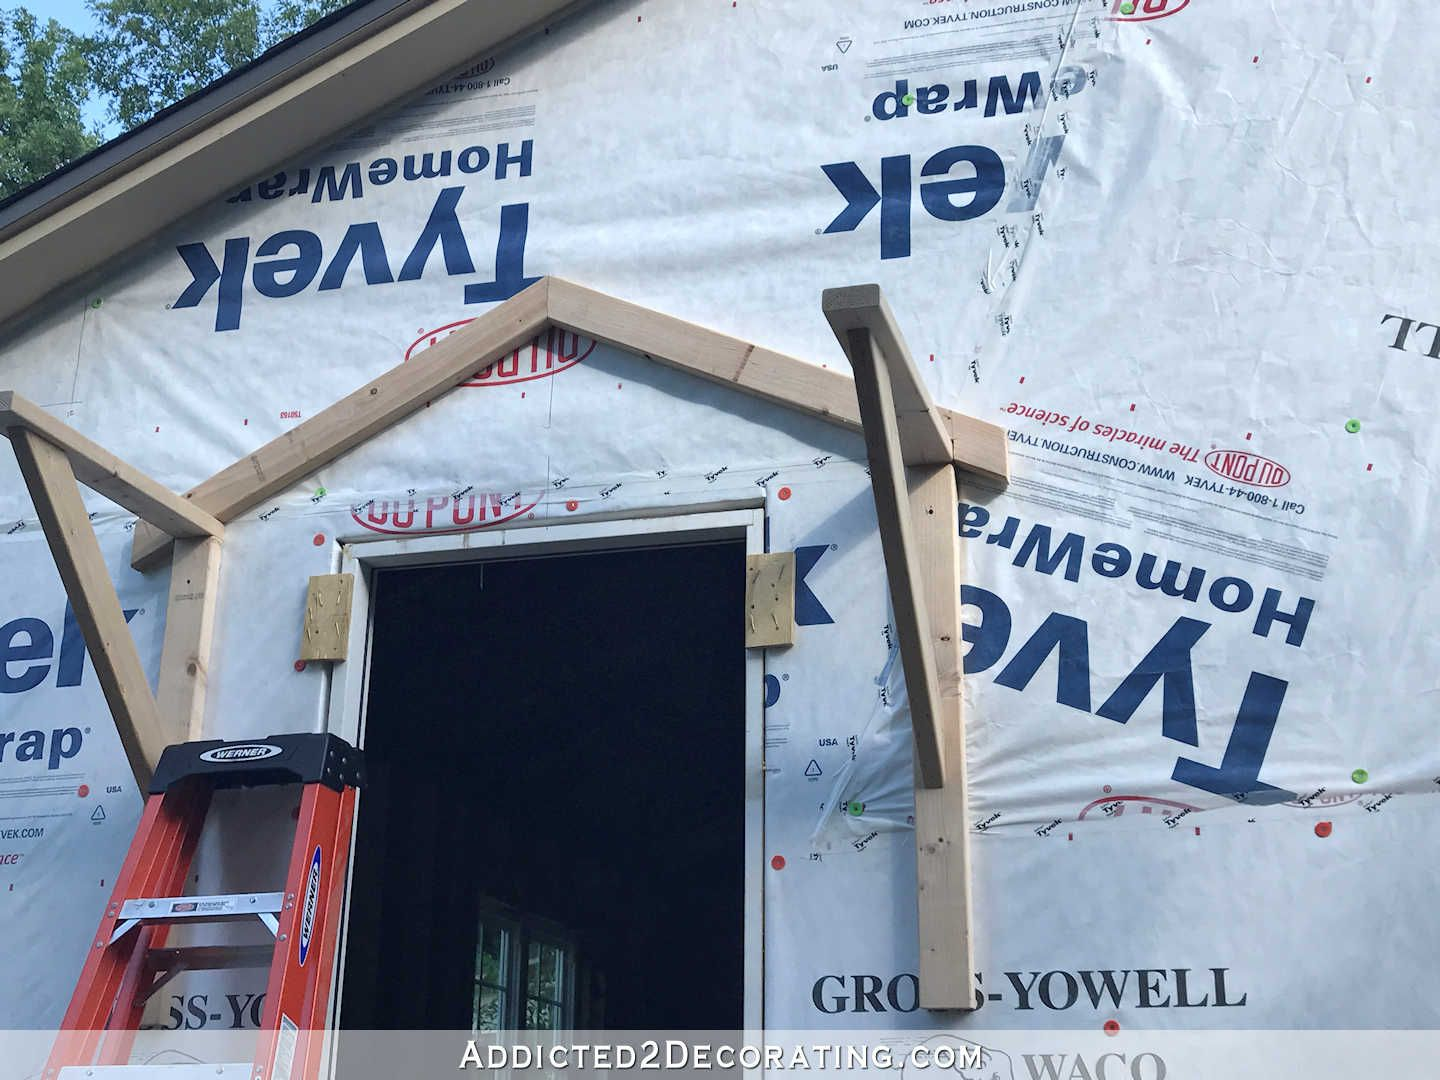 How To Build A Small Portico Above A Door Part 1 The Basic Frame Portico Door Overhang Basic Frames